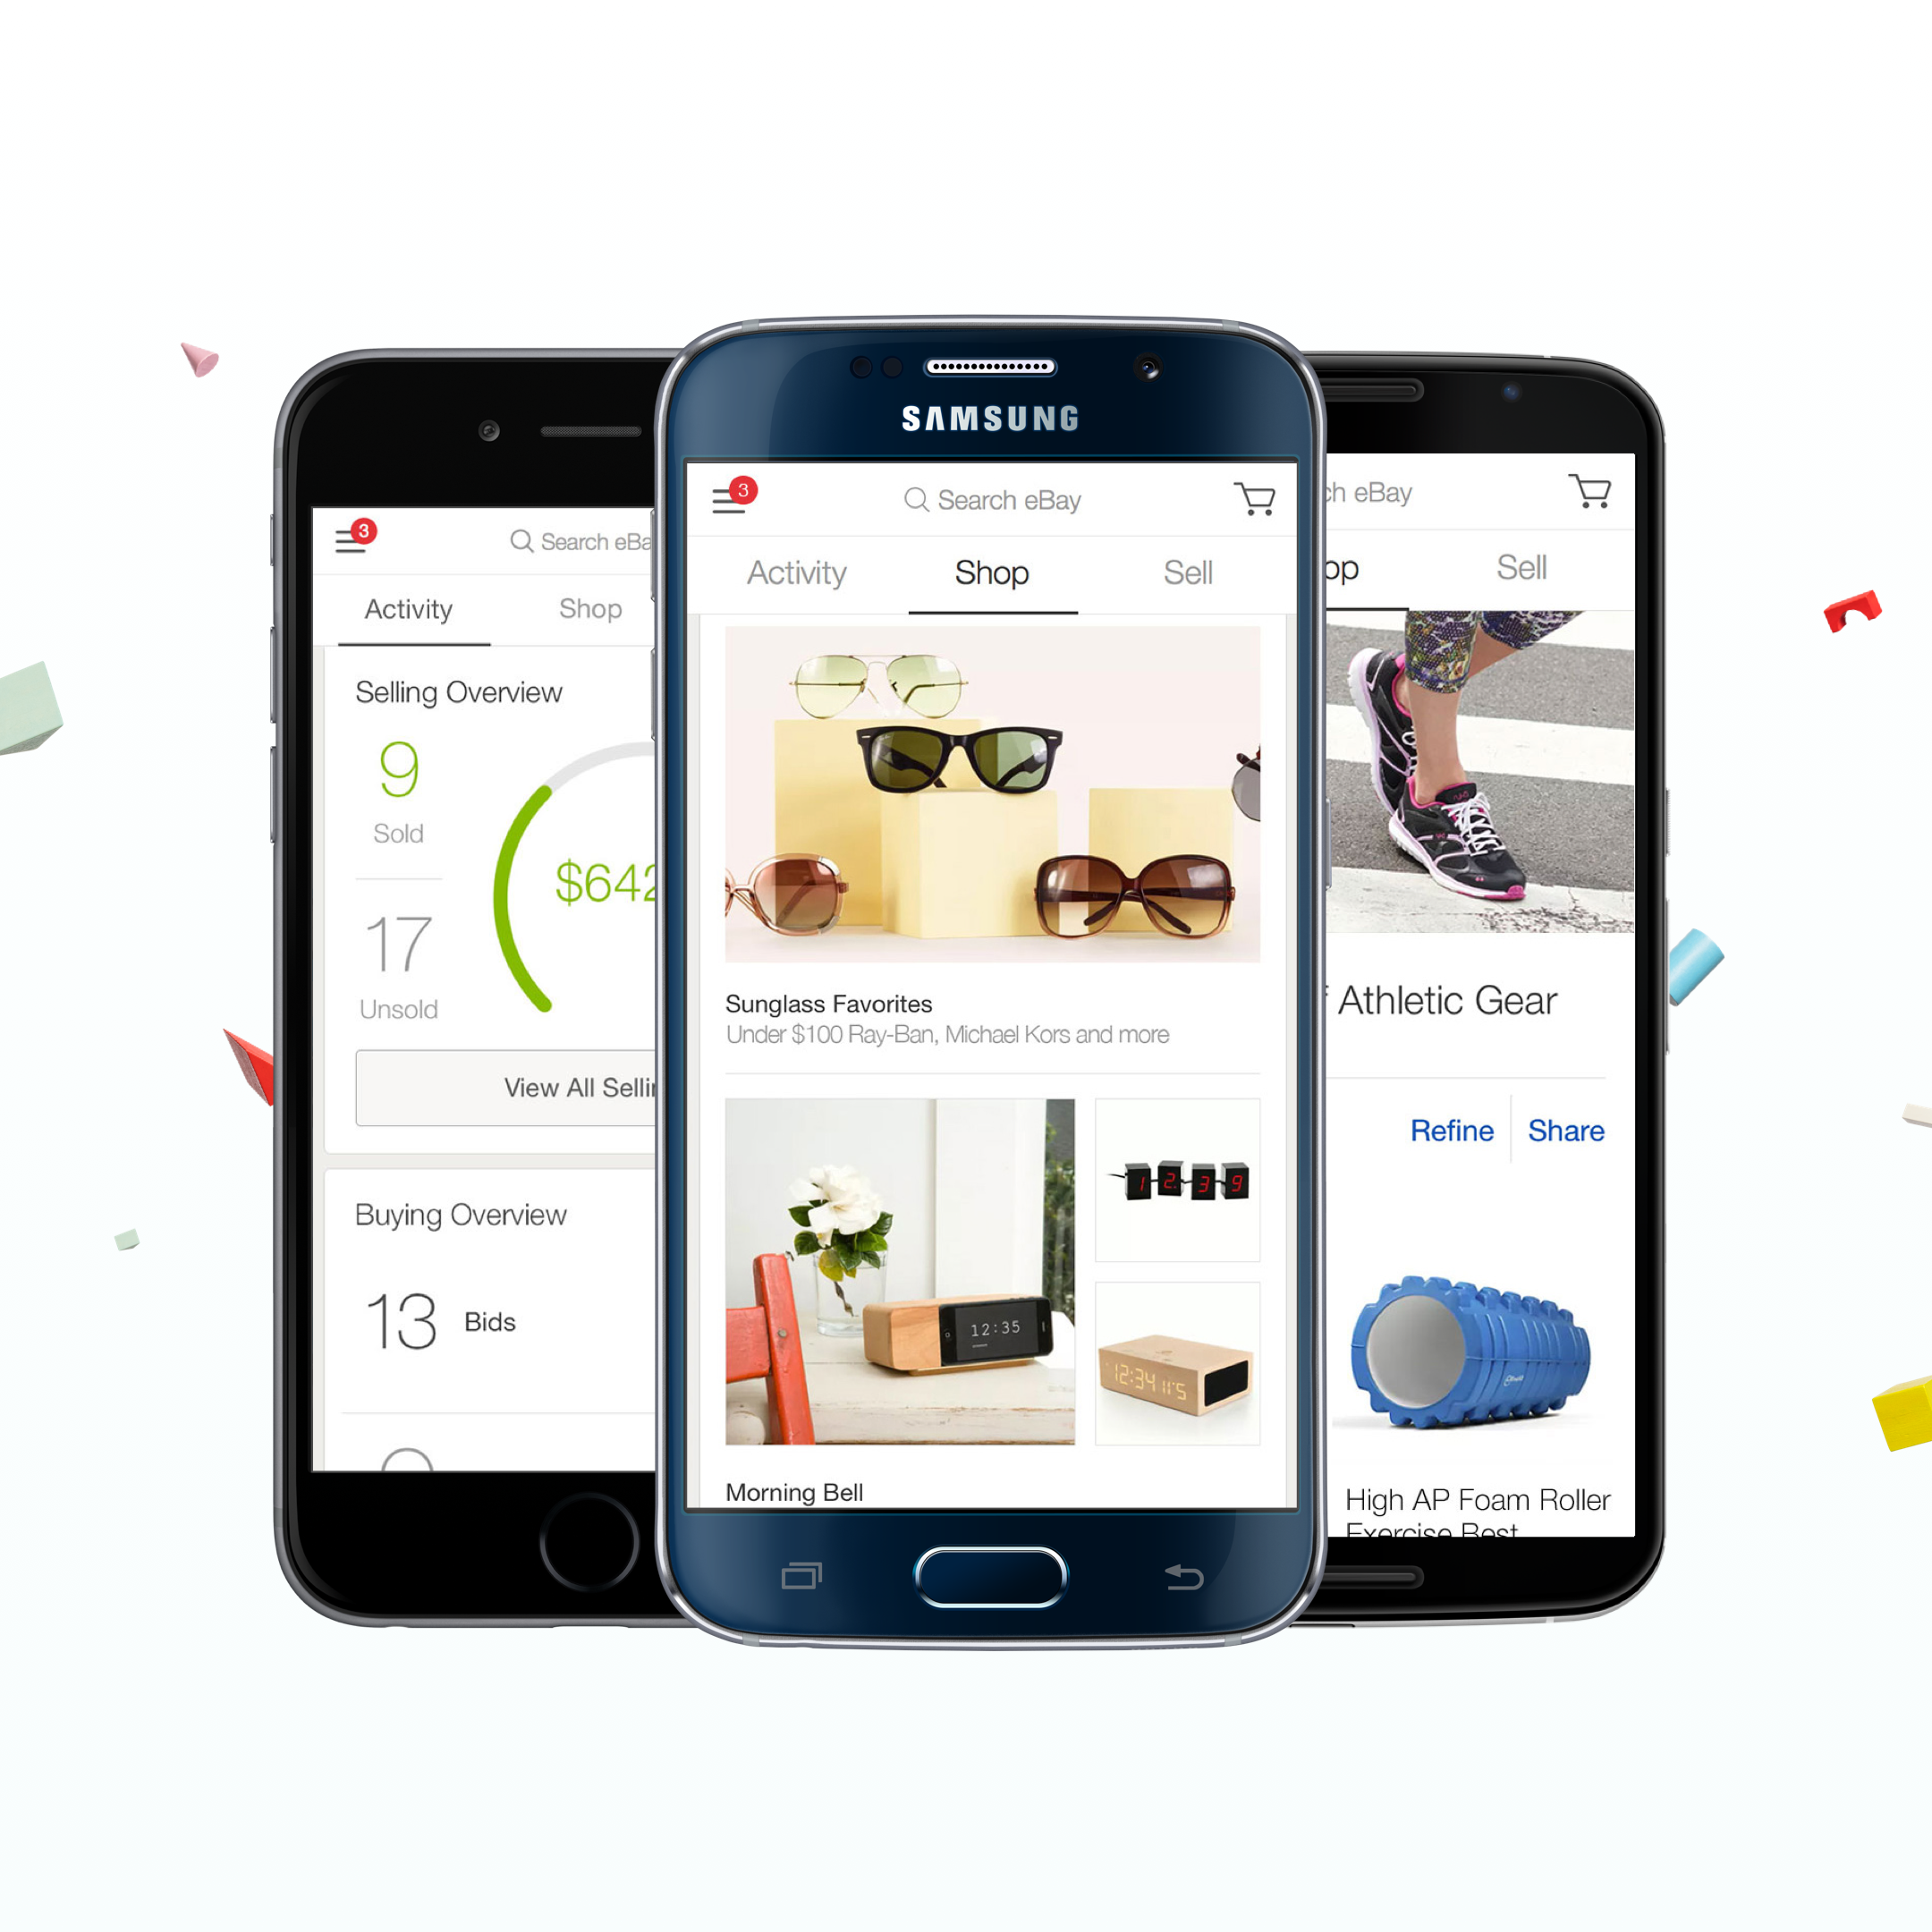 Ebay Simplifies Its Ios And Android Mobile App In Latest Update Venturebeat